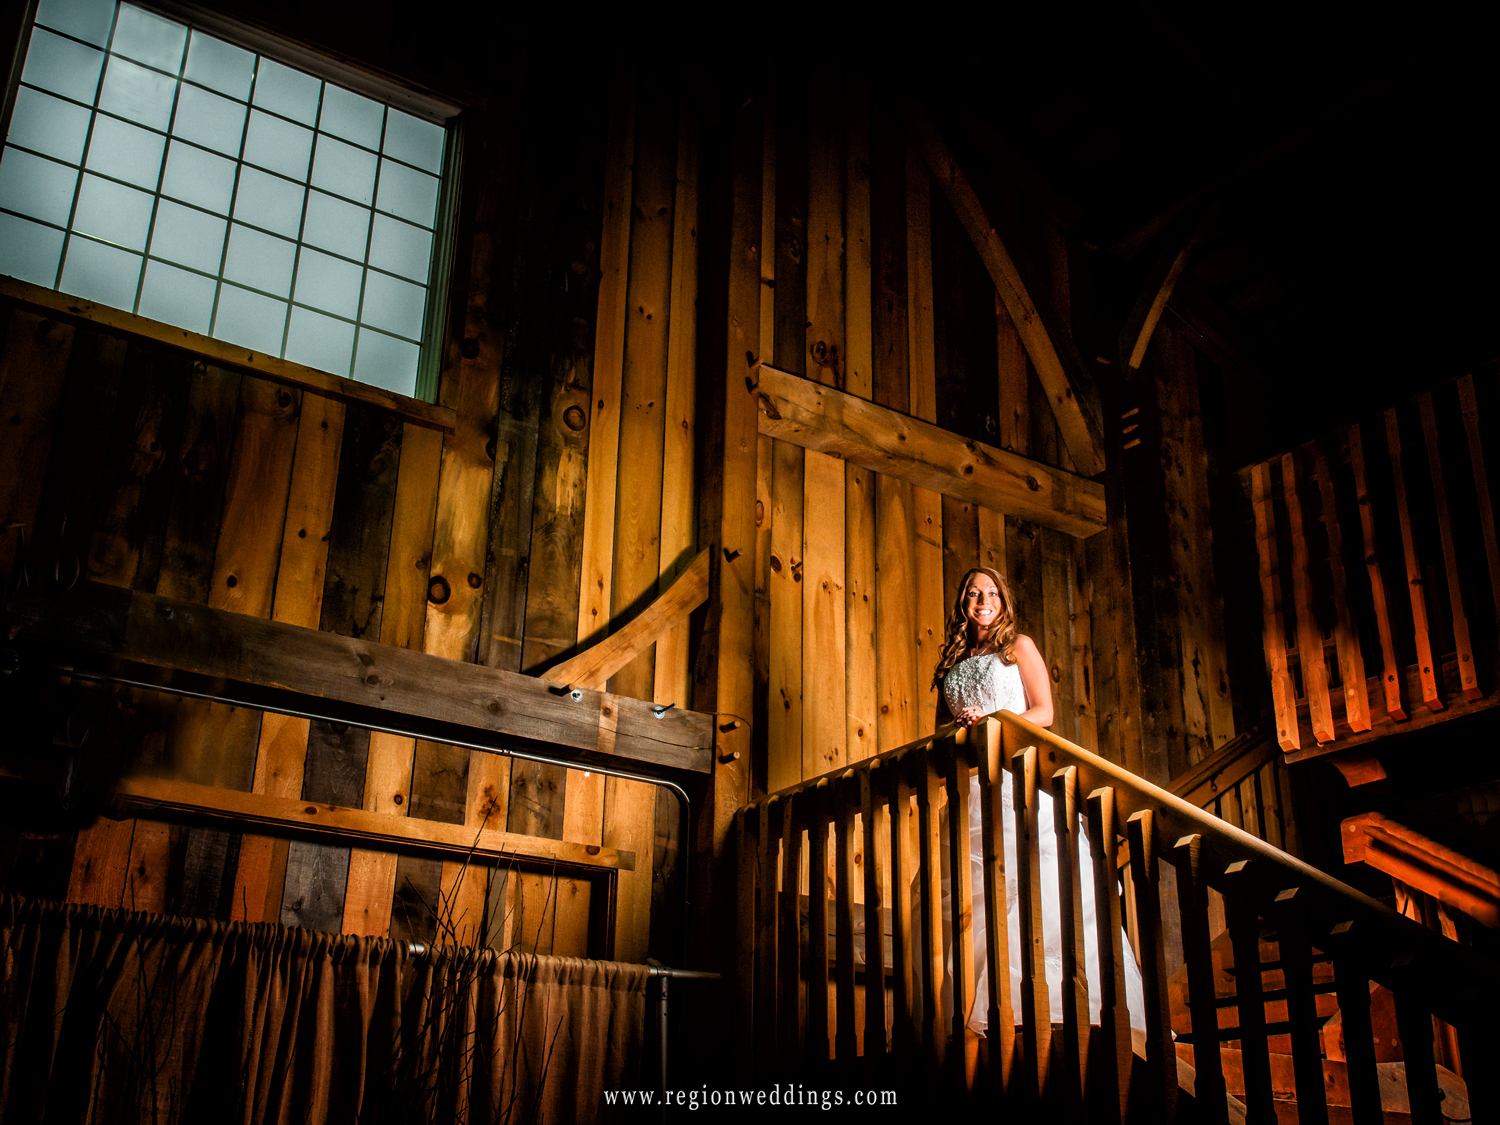 A bride stands alone on the staircase at County Line Orchard.